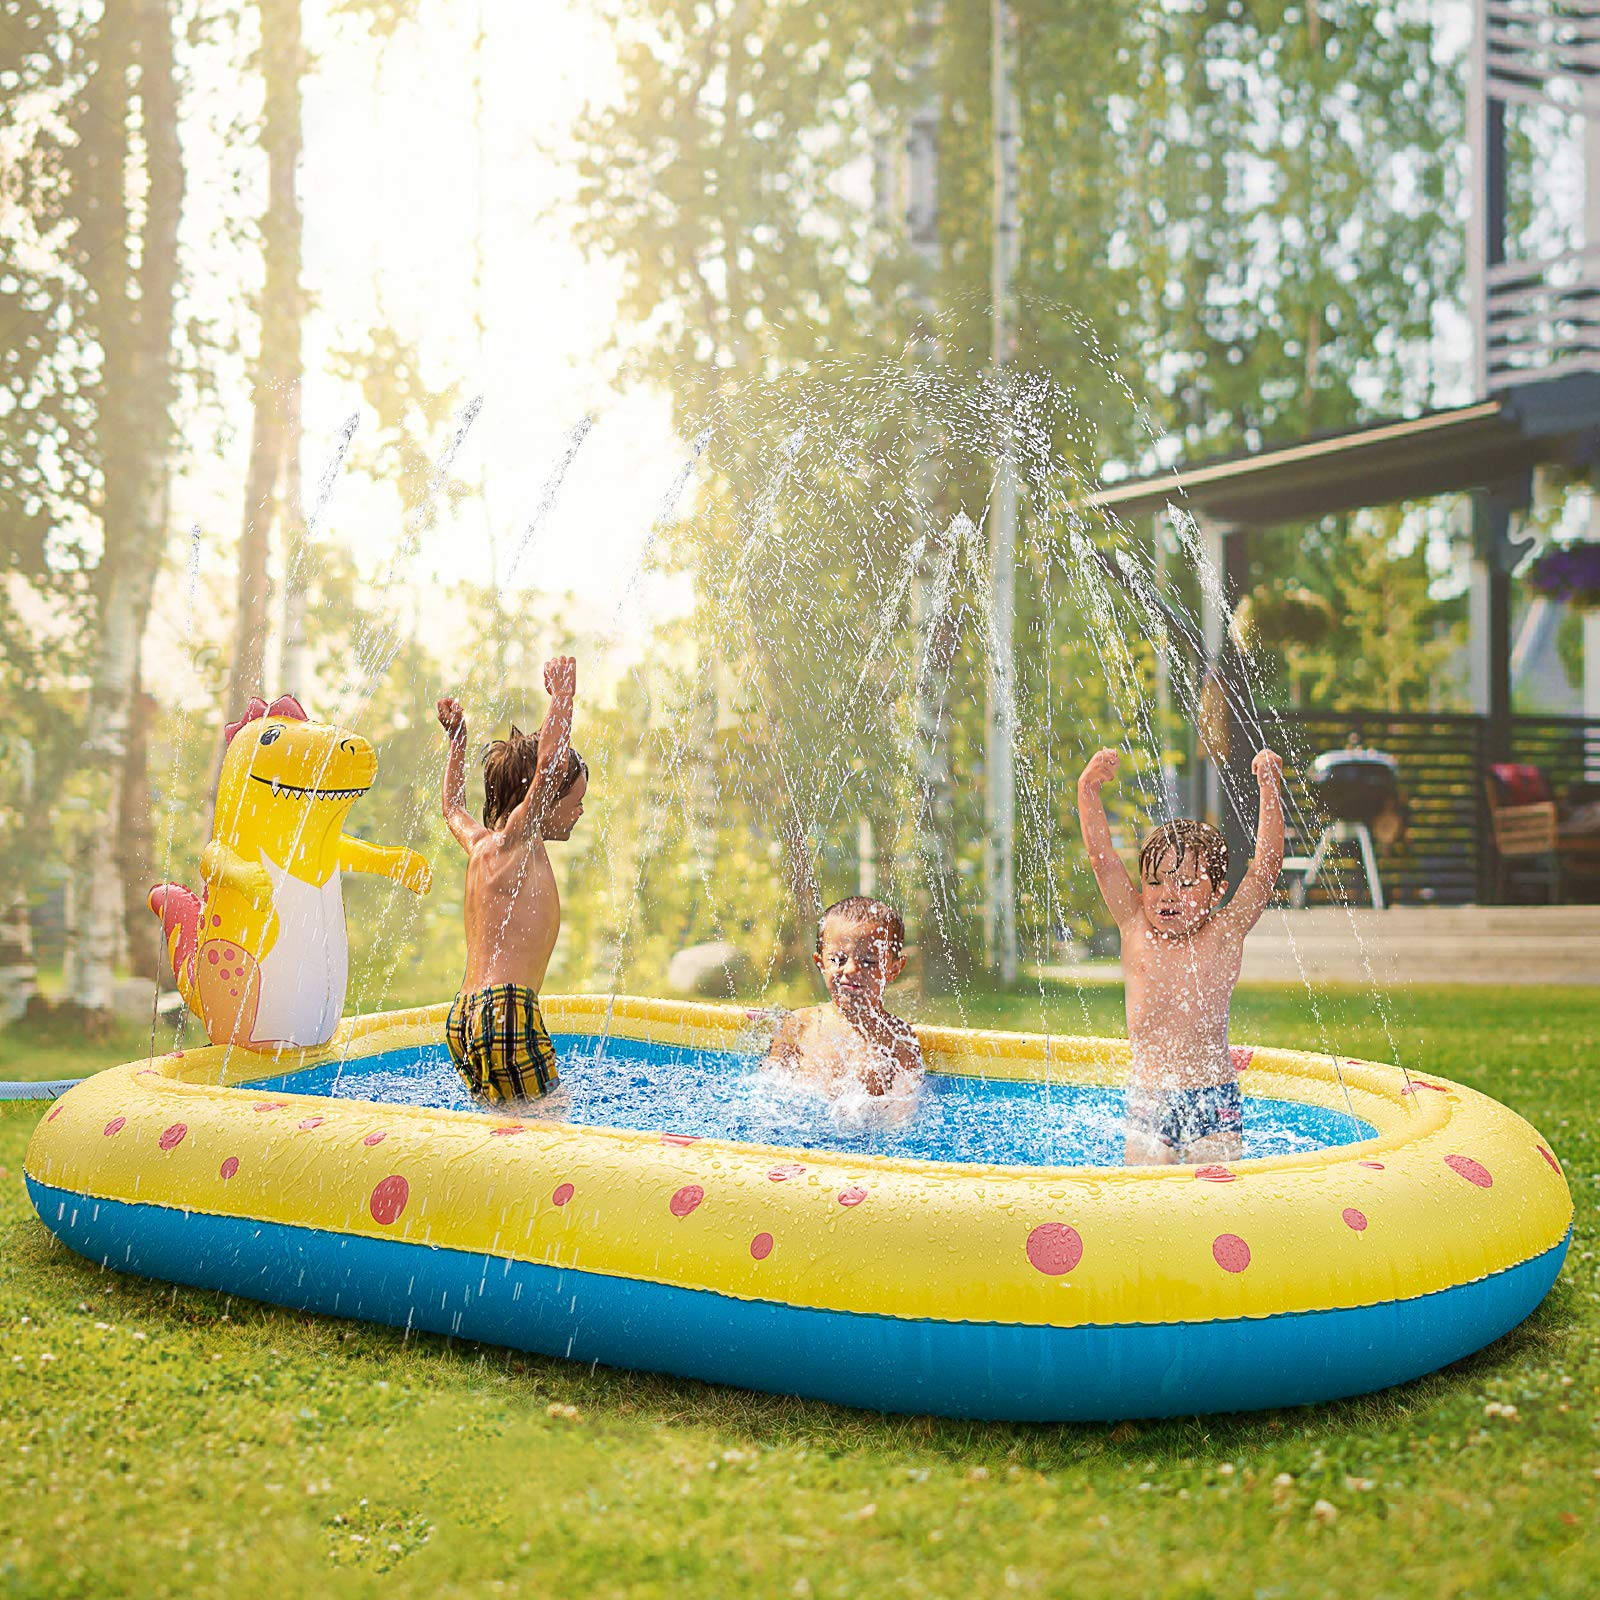 Inflatable Sprinkler Swimming Pool, Blow Up Kiddie Water Pool with Splash, Portable Cute Dinosaur Design Babies Toy Pool, Family Lounge Water Park, for Toddler, Backyard, Outdoor, Garden, Summer Gift